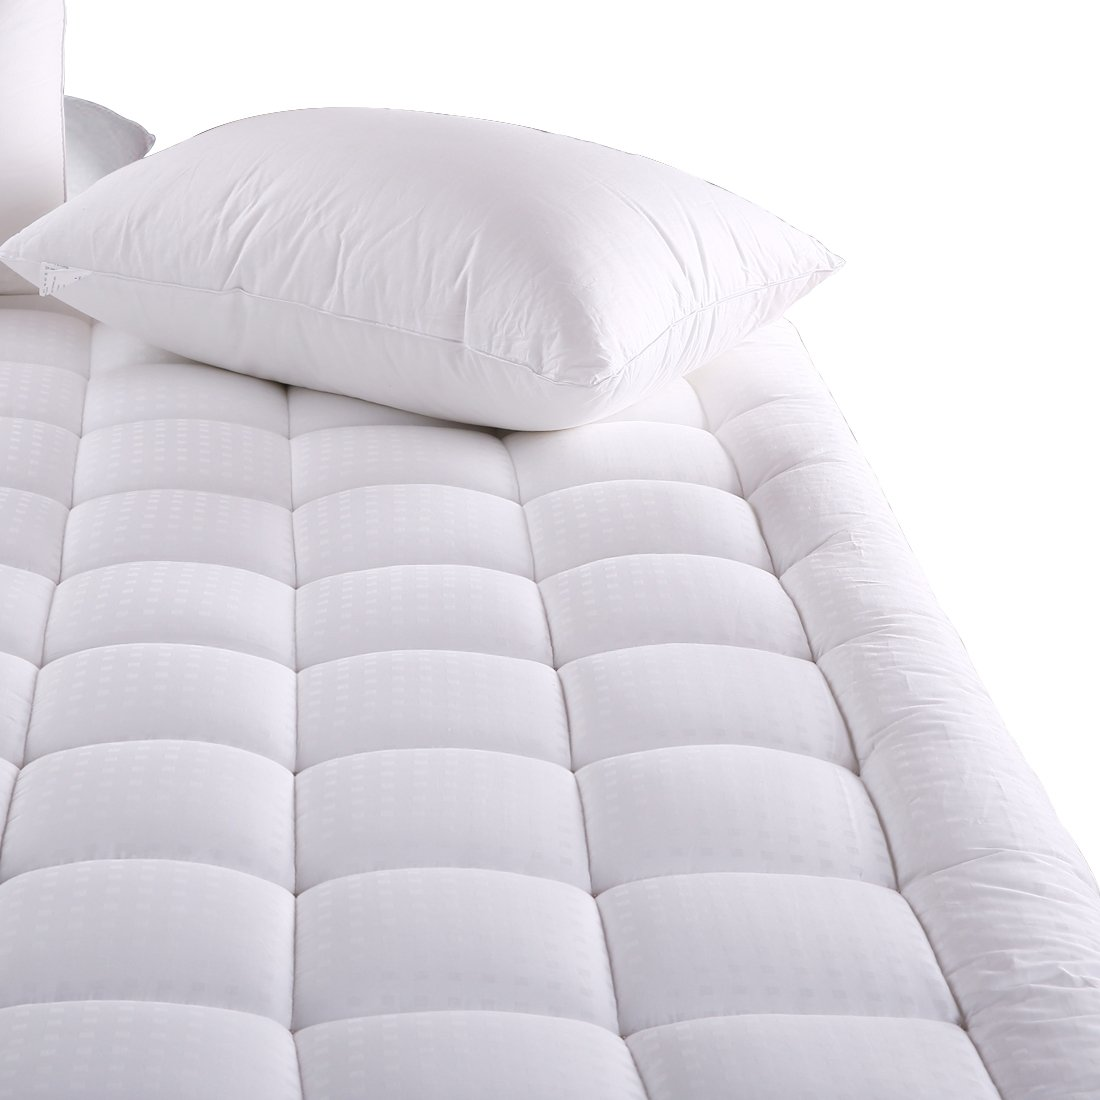 MEROUS Twin XL Size Cotton Mattress Pad Cover - Hypoallergenic Fitted Quilted Mattress Topper - Stretches up to 18 Inches Deep